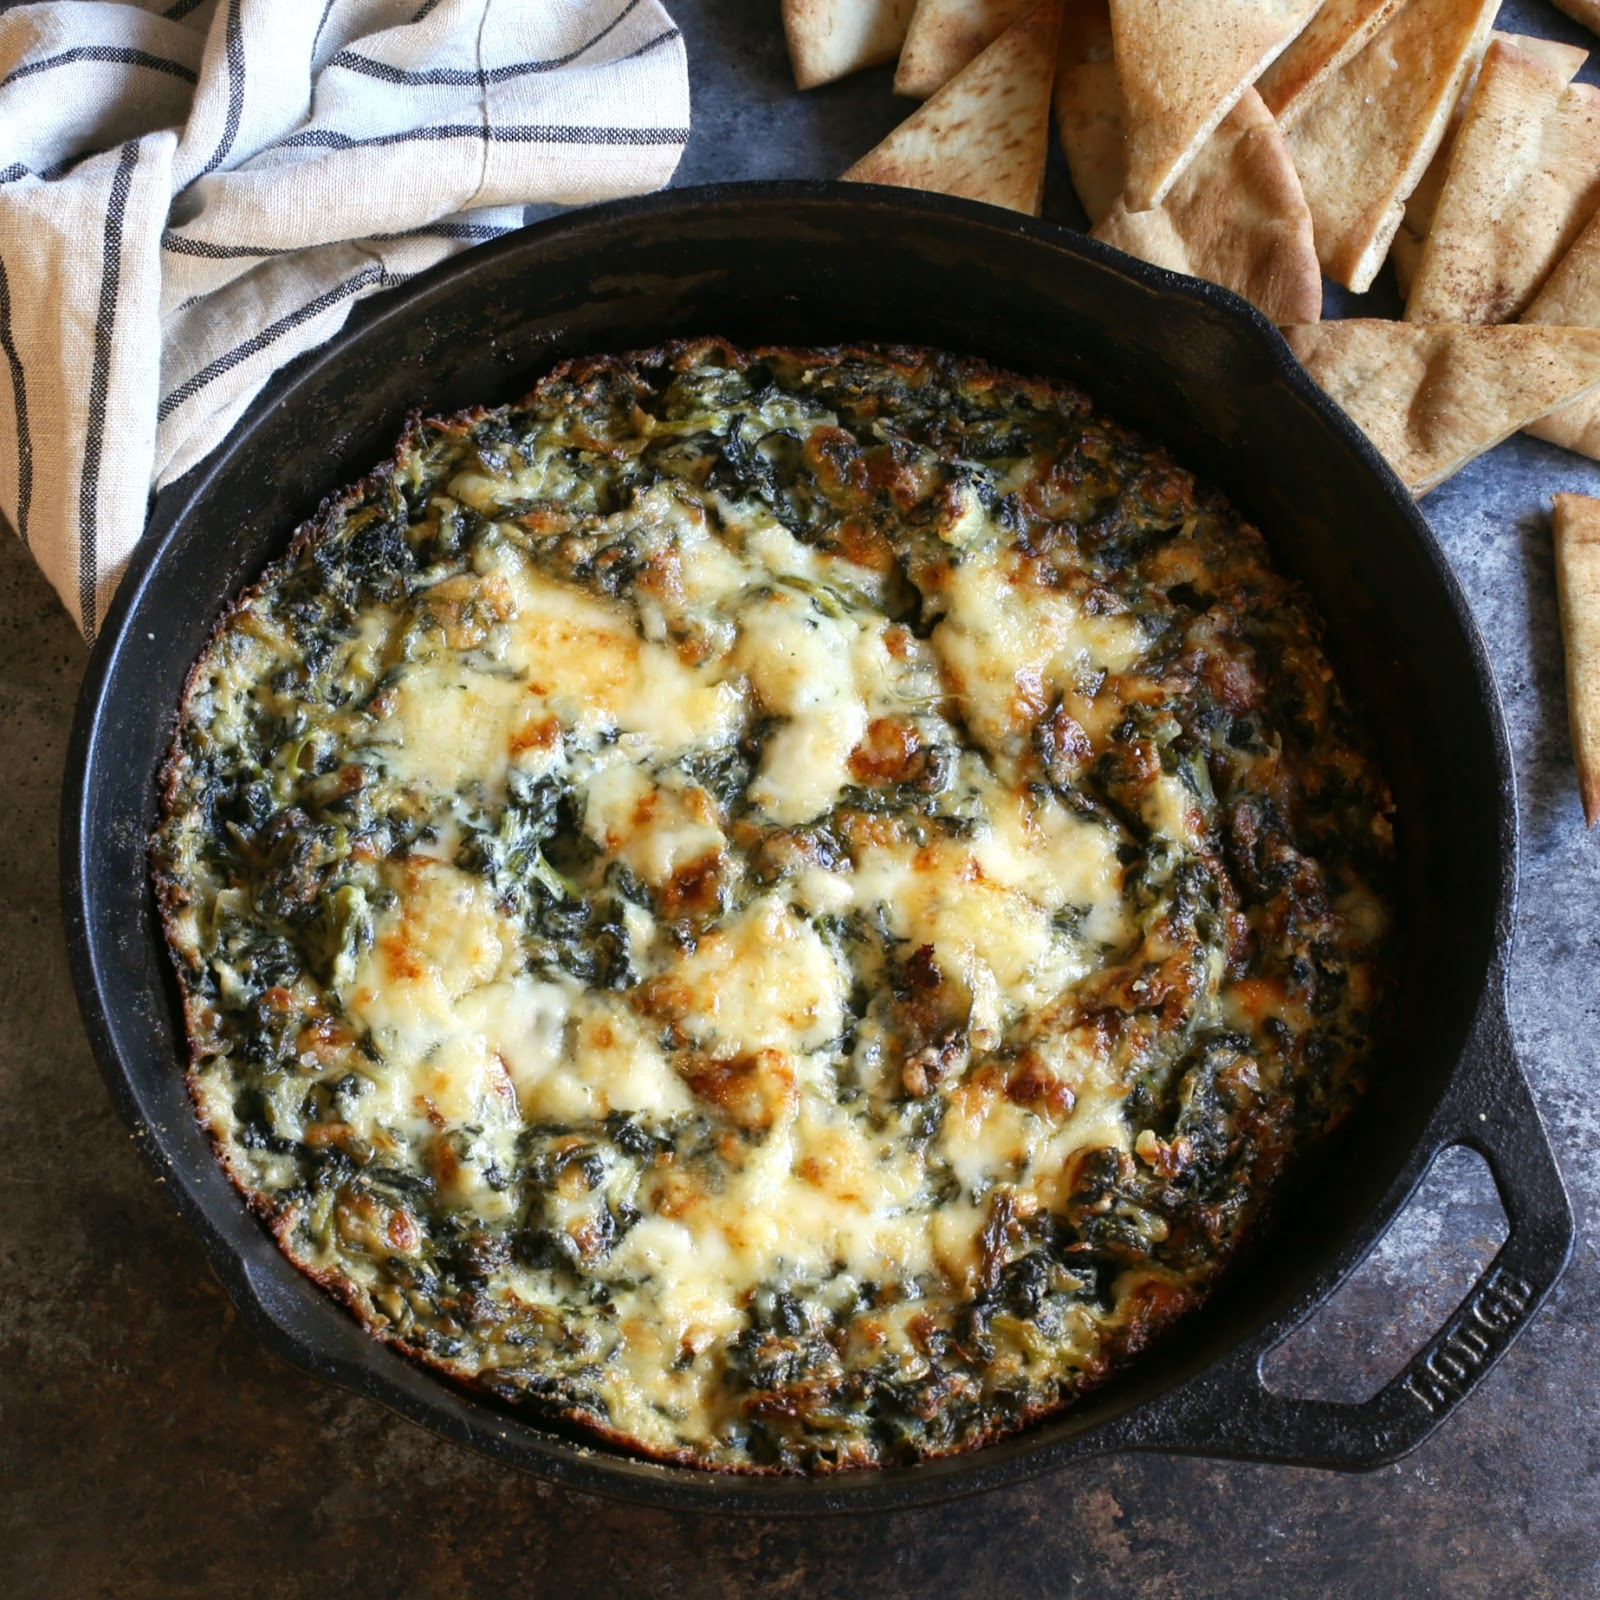 Hot baked spinach dip with 3 cheeses.